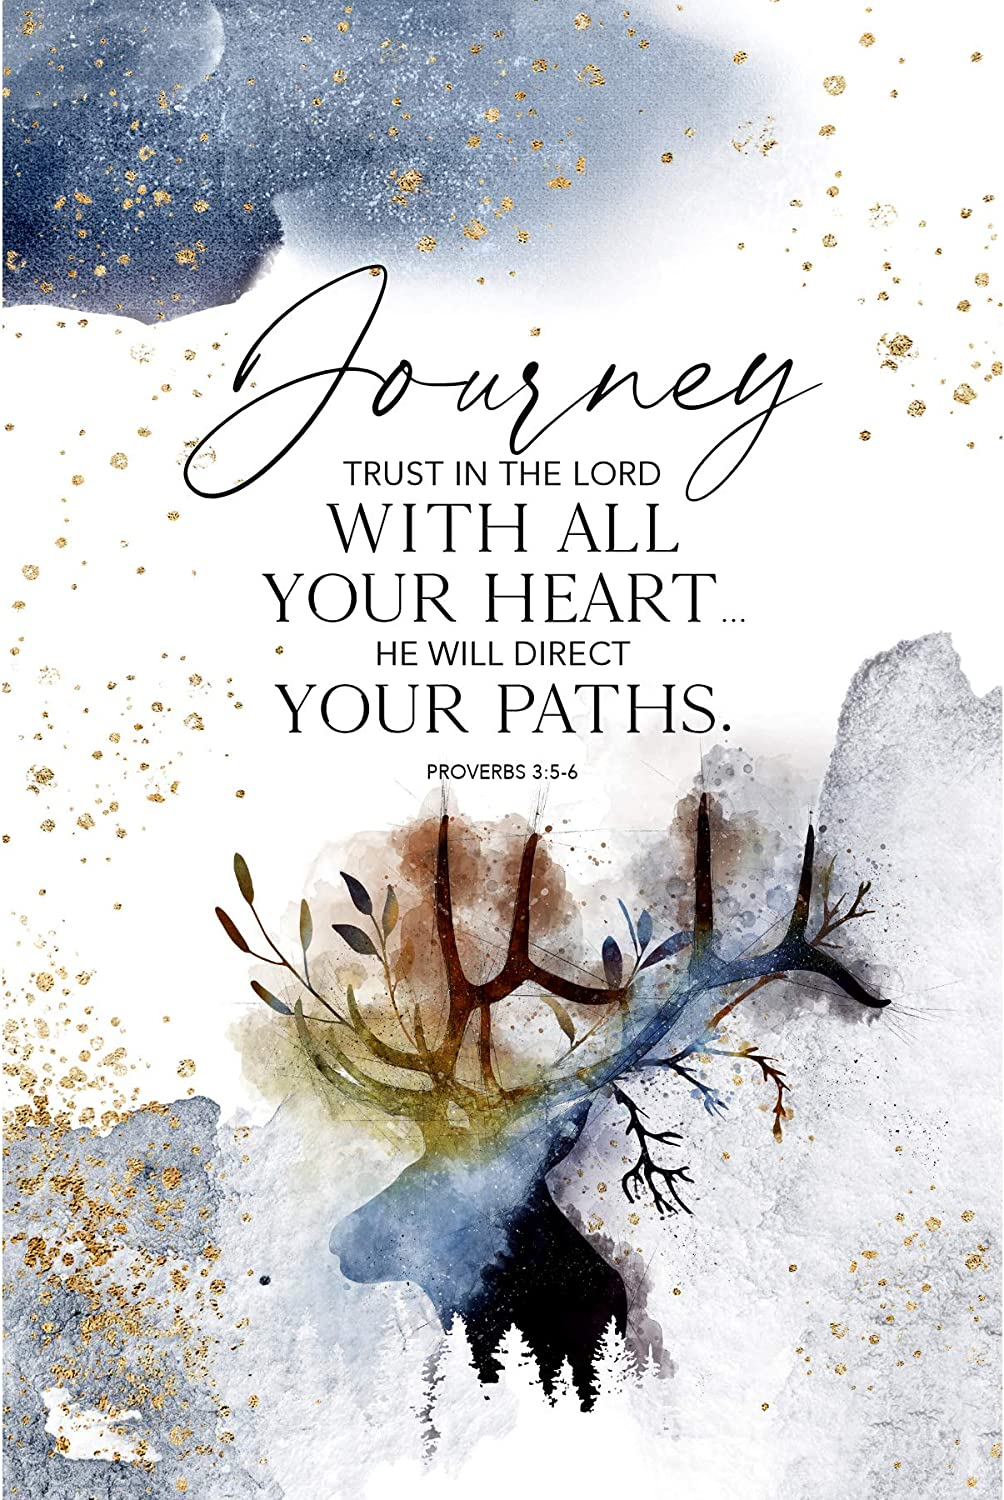 Journey Trust in The Lord Wood Plaque with Inspiring Quotes 6 inches x 9 inches - Elegant Vertical Frame Wall & Tabletop Decoration   Easel & Hanging Hook   He Will Direct Your Paths. Proverbs 3:5-6